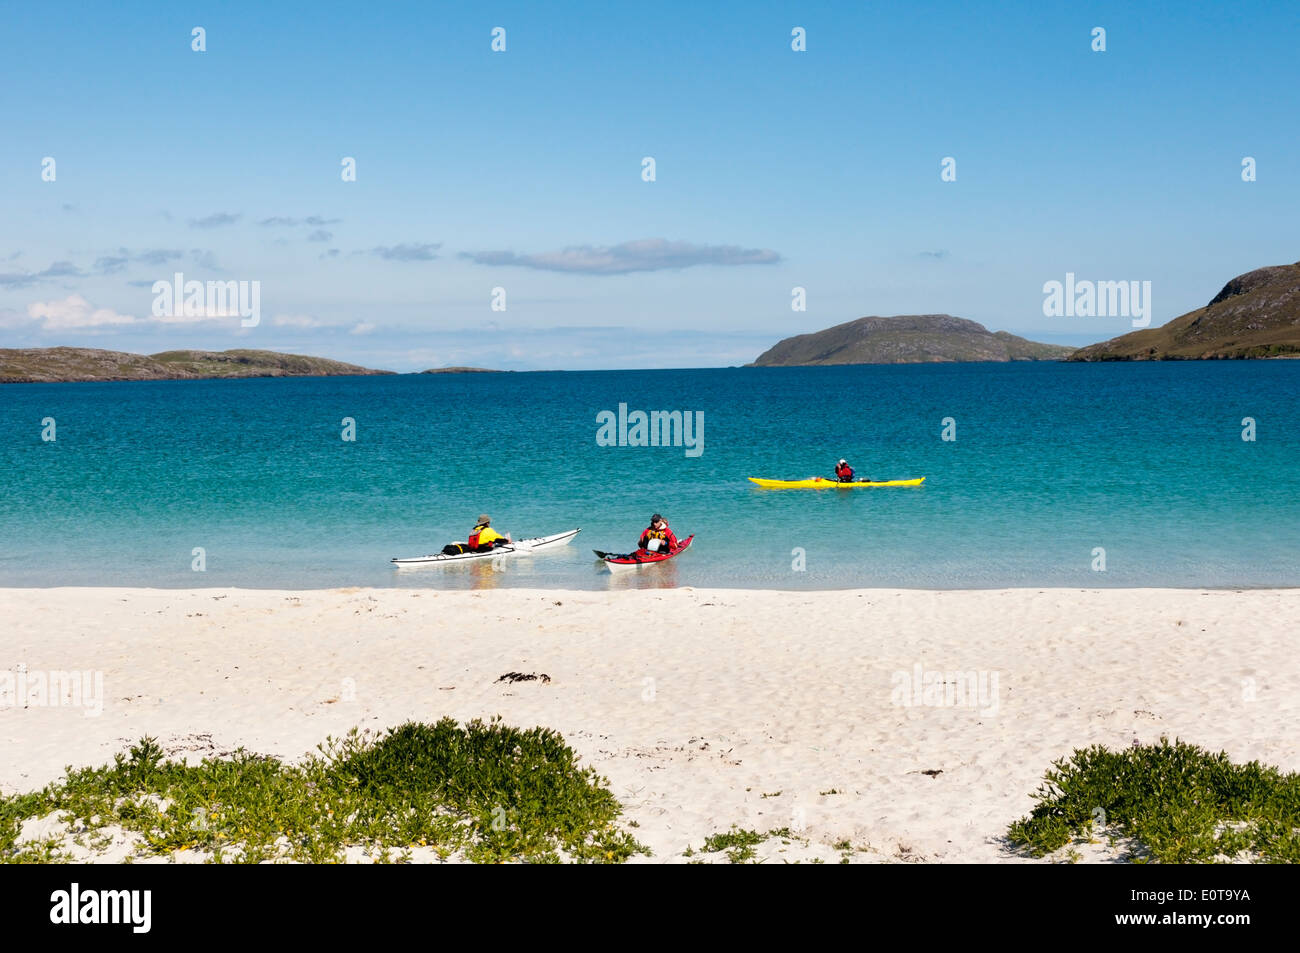 Kayakers paddling along the coast off the east beach of Vatersay in the Outer Hebrides. - Stock Image